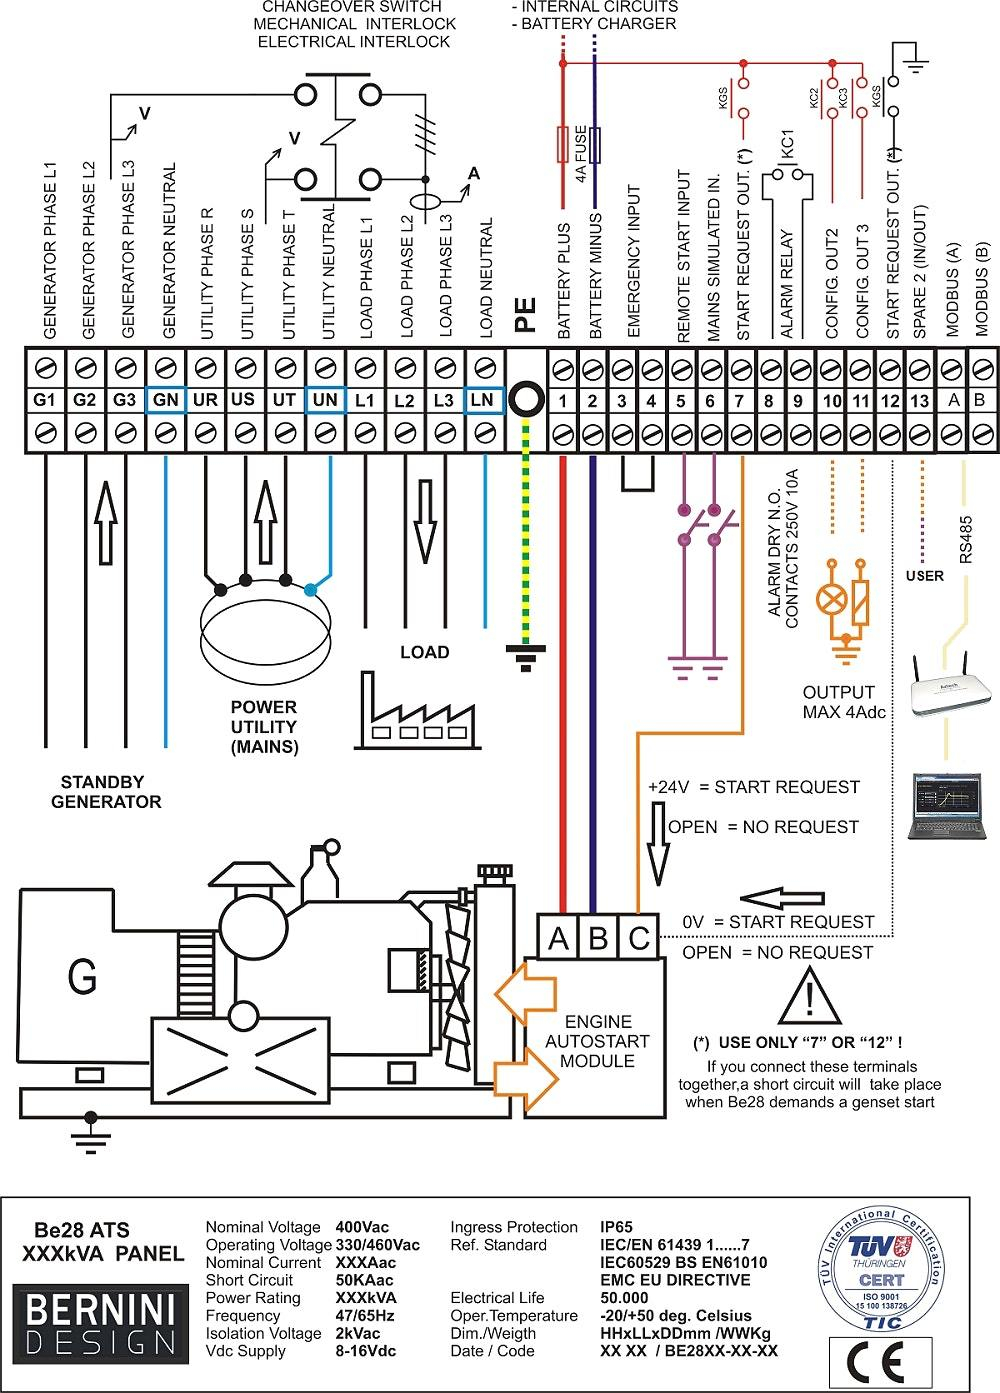 Connection Diagram Olympian Generator | Wiring Library